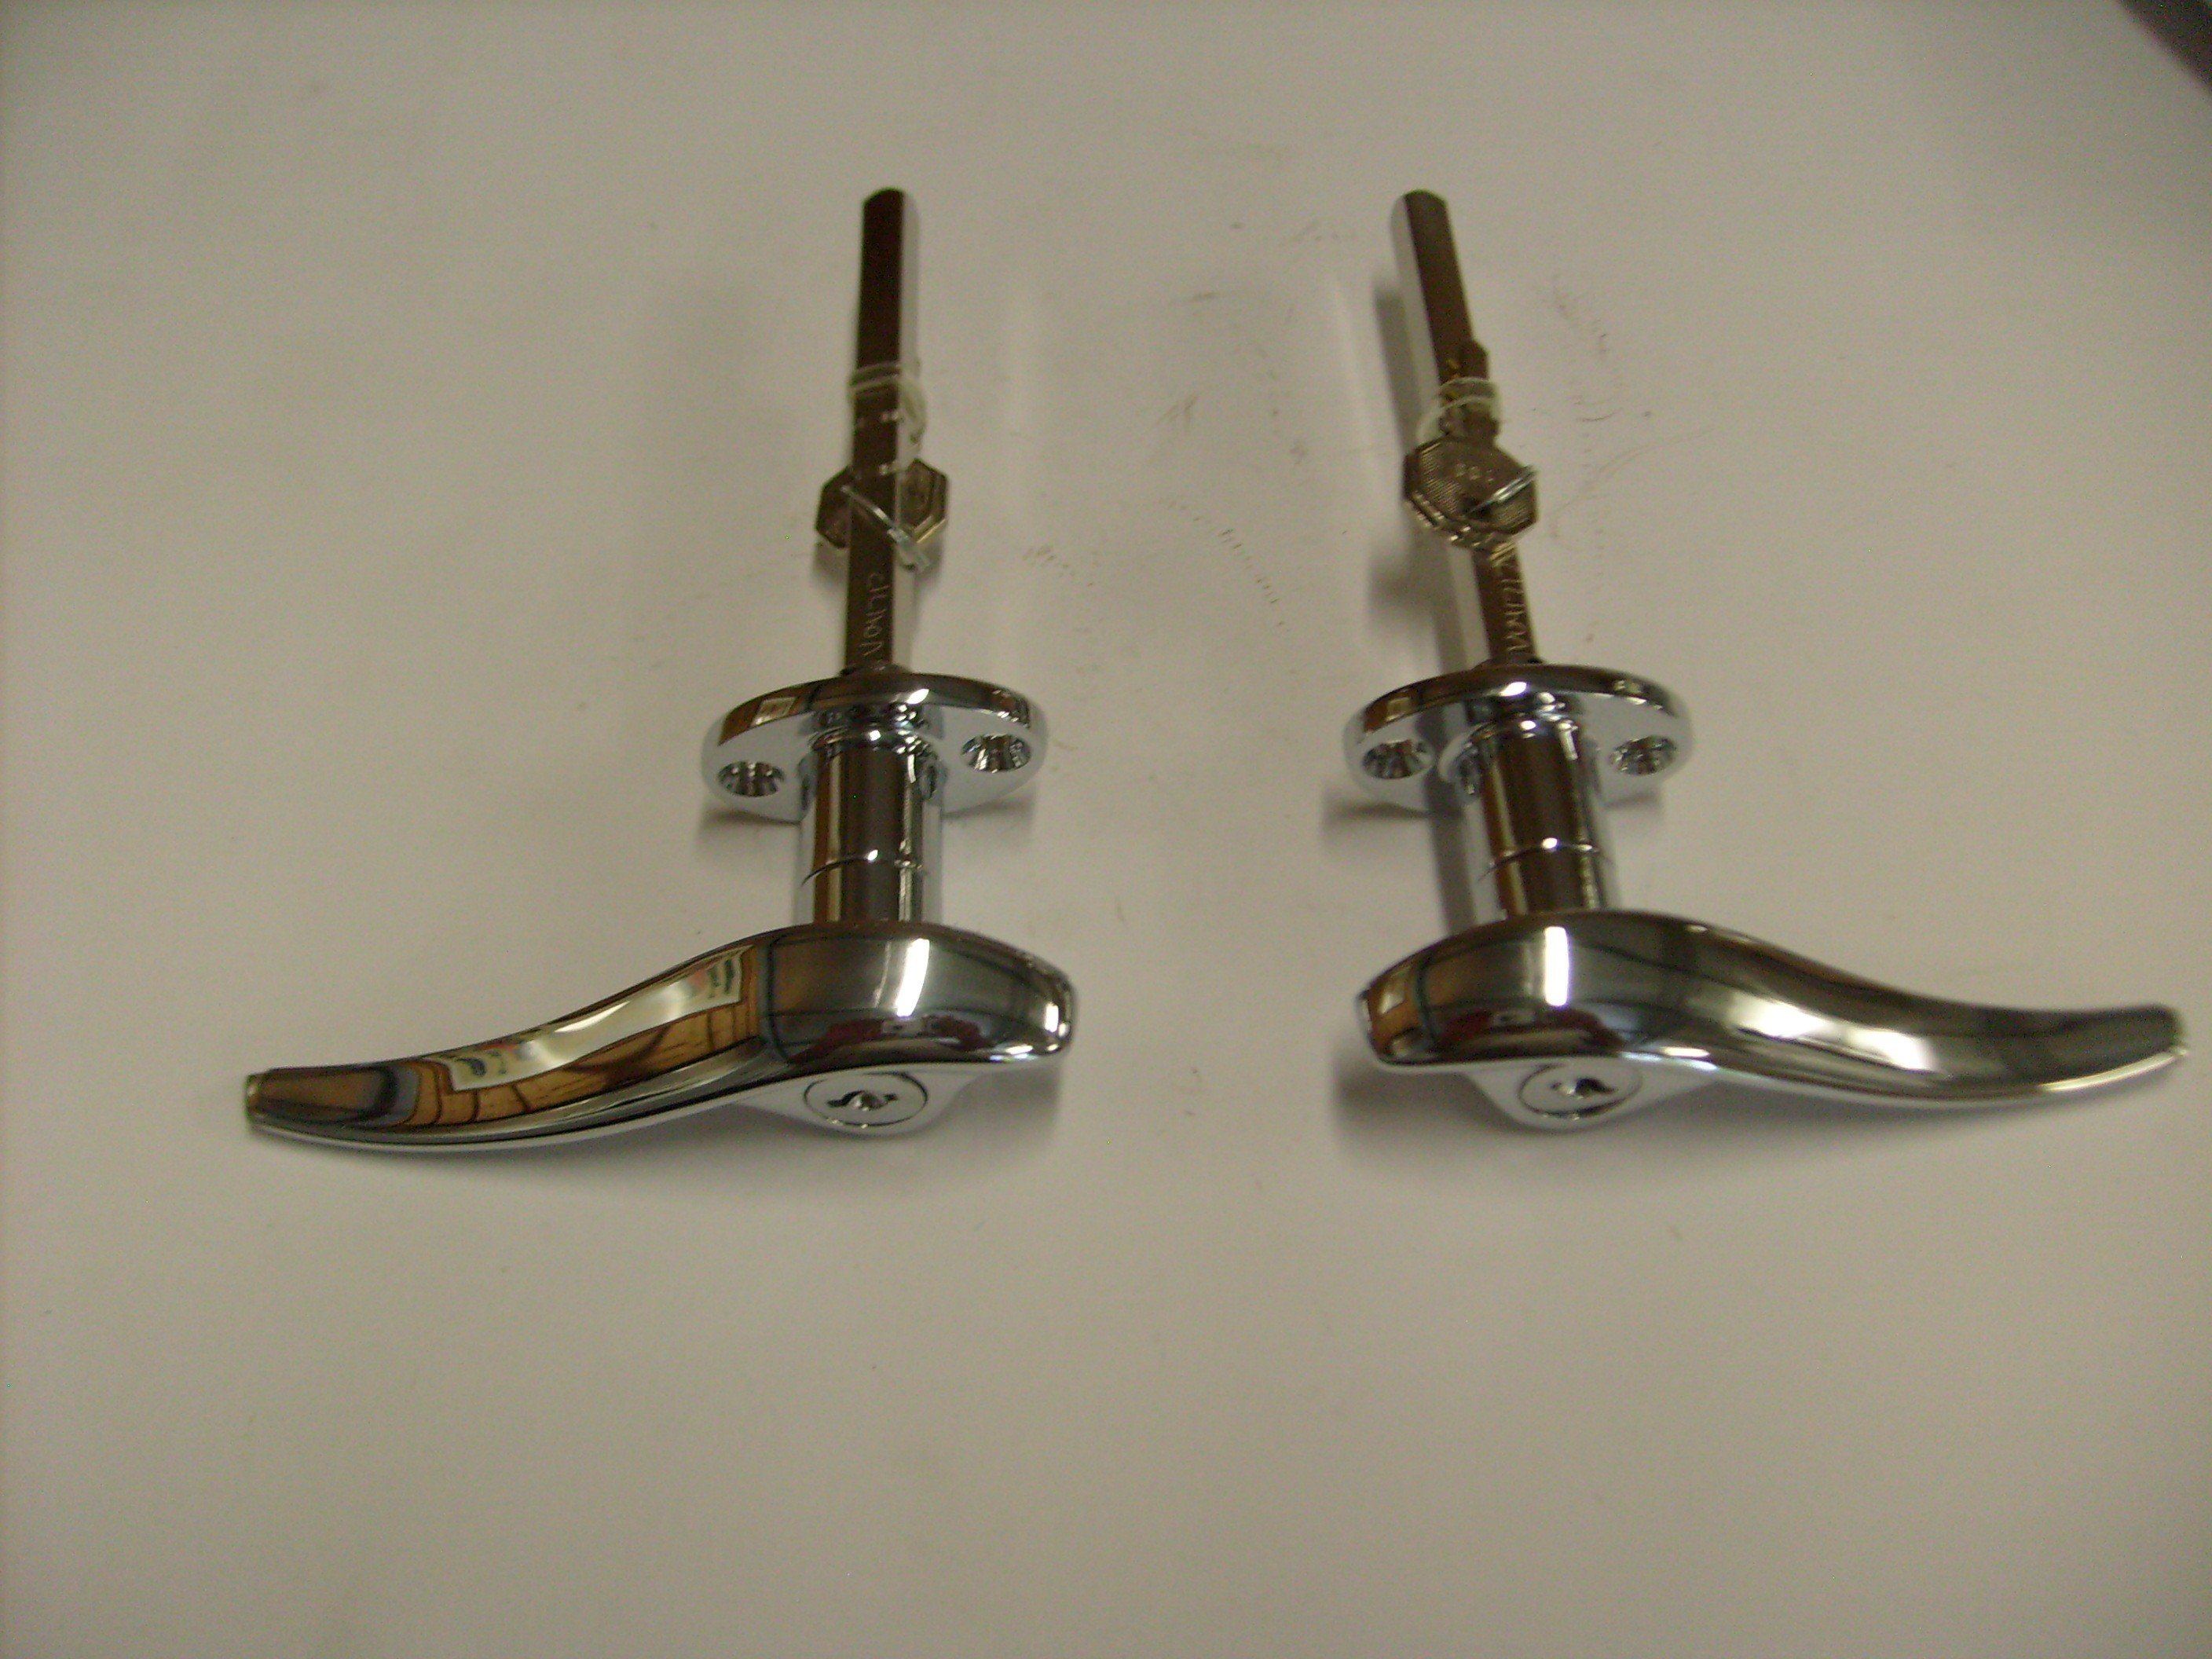 Locking Exterior Door Handle 1933 34 Early Times Autos Hot Rod Parts Gold Coast Brisbane